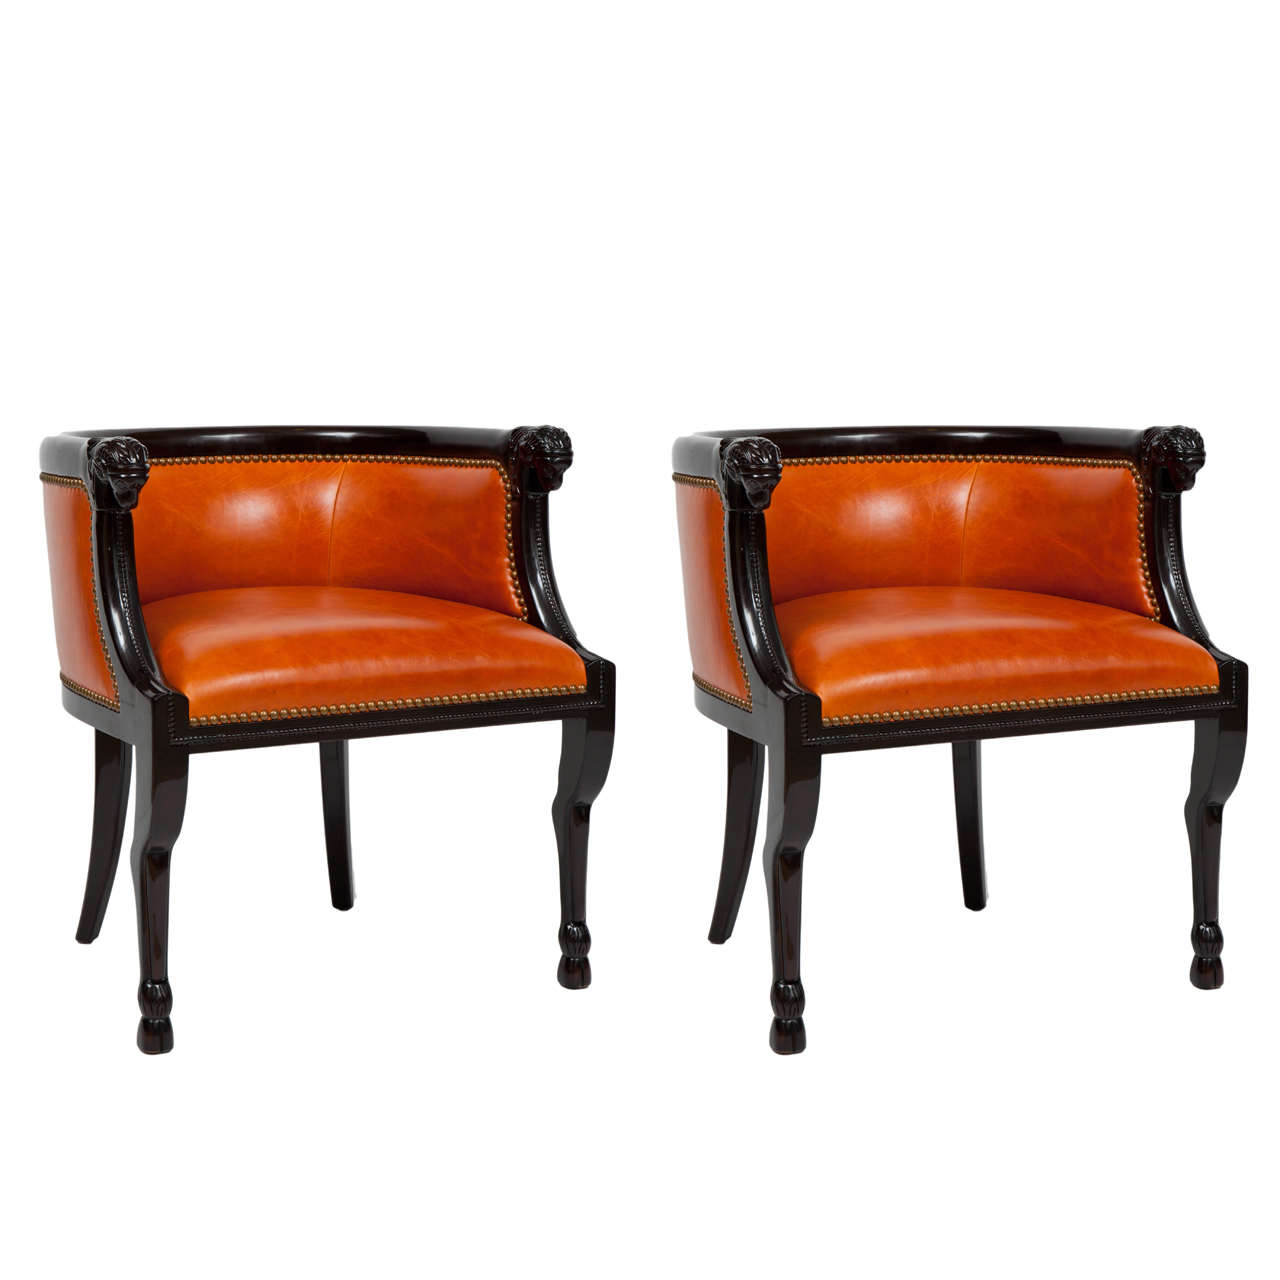 Neoclassical Carved Ram's Head Club Chairs 1